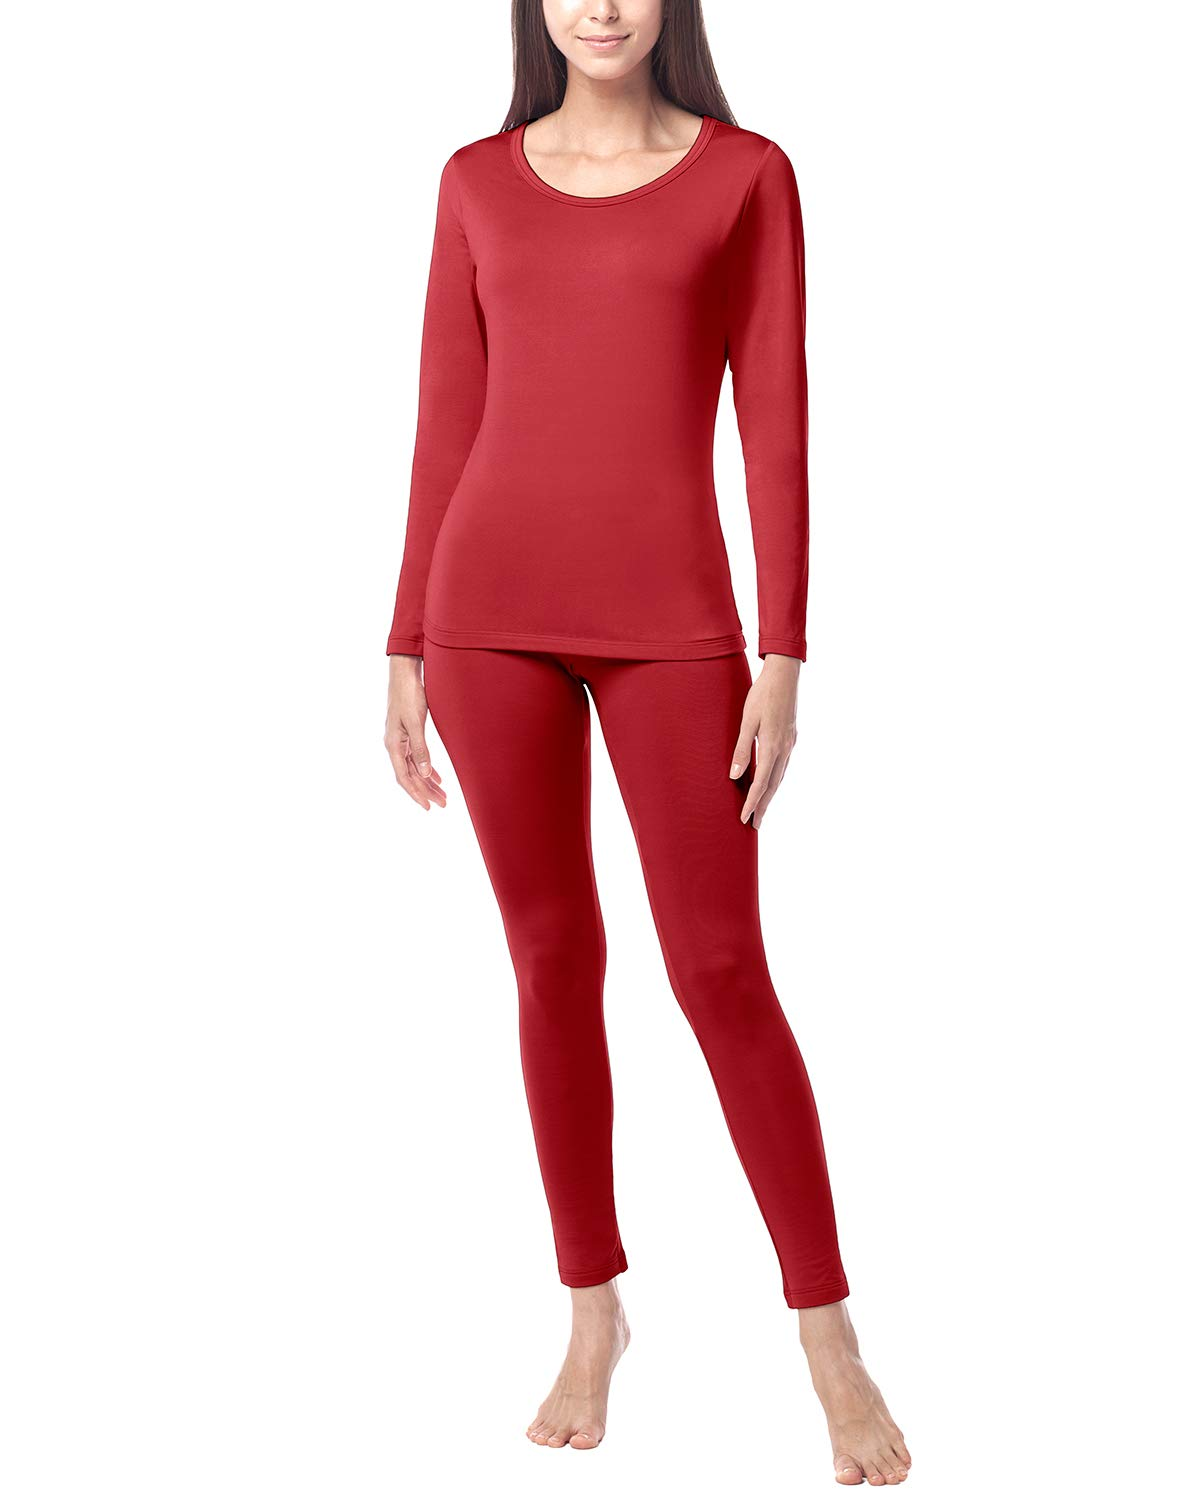 LAPASA Women's Lightweight Thermal Underwear Long John Set Fleece Lined Base Layer Top and Bottom L17 (X-Small, Red) by LAPASA